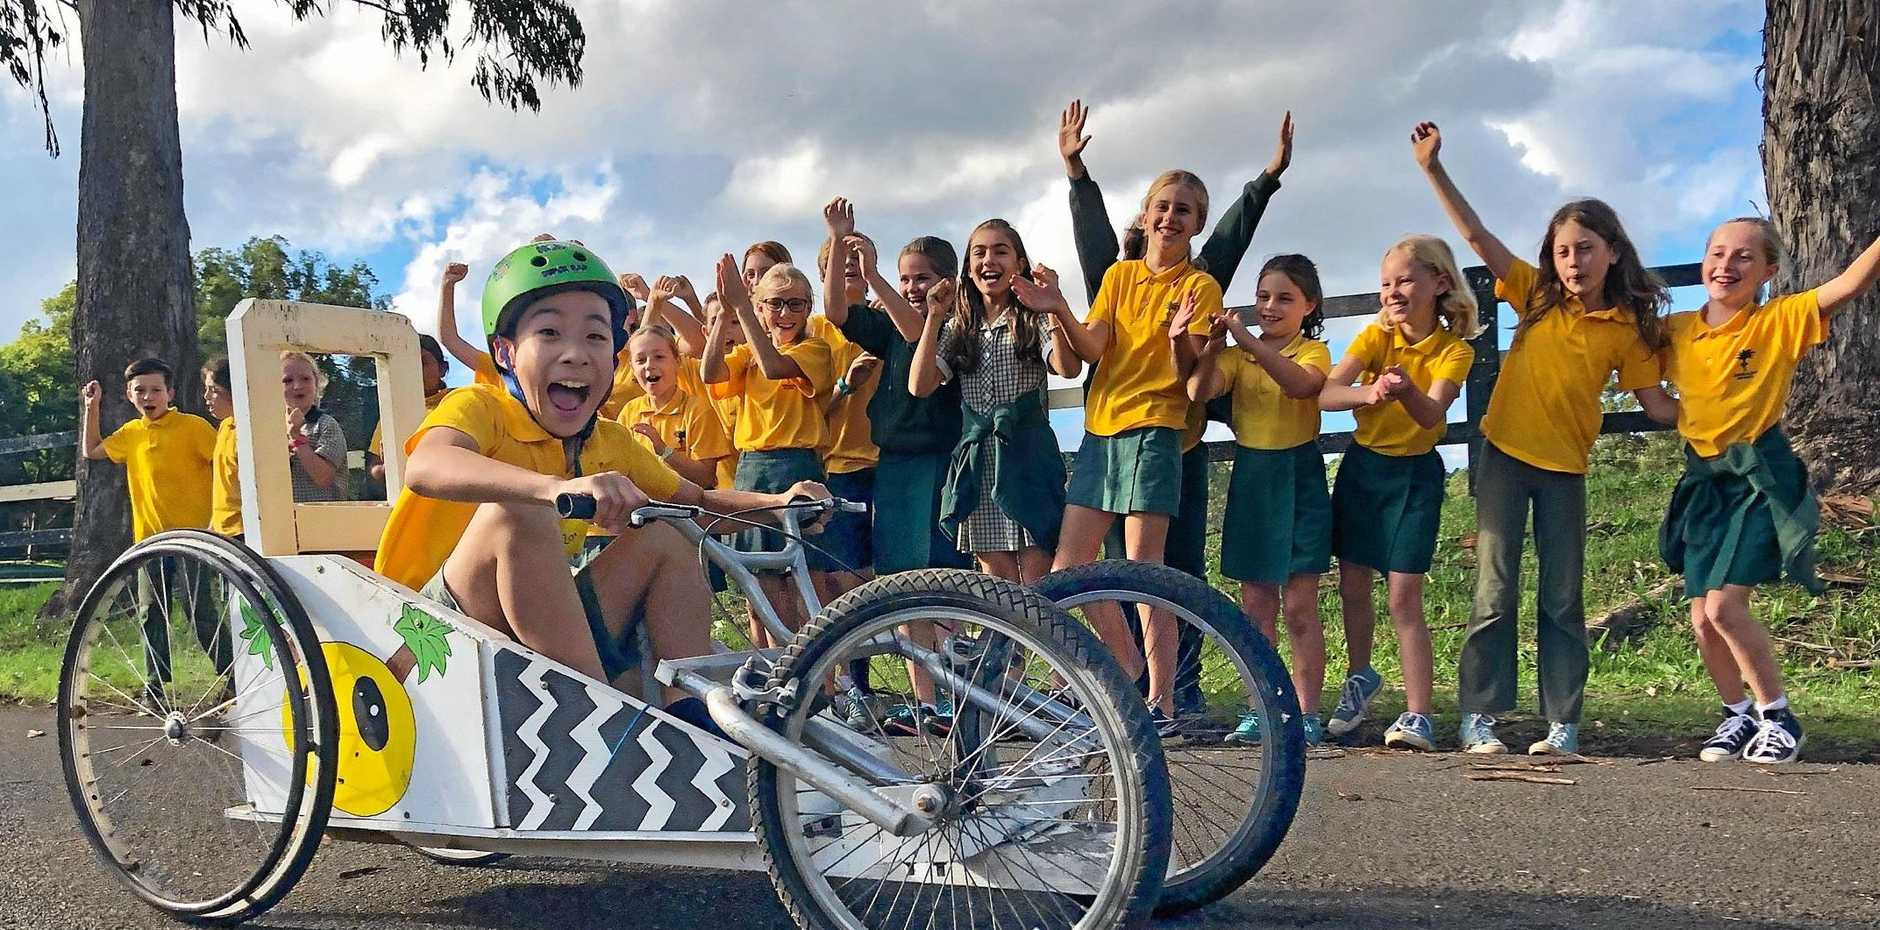 READY, SET, ROLL: Roi at the controls as Bangalow Public School billycarters get ready for the Bangalow Billycart Derby.